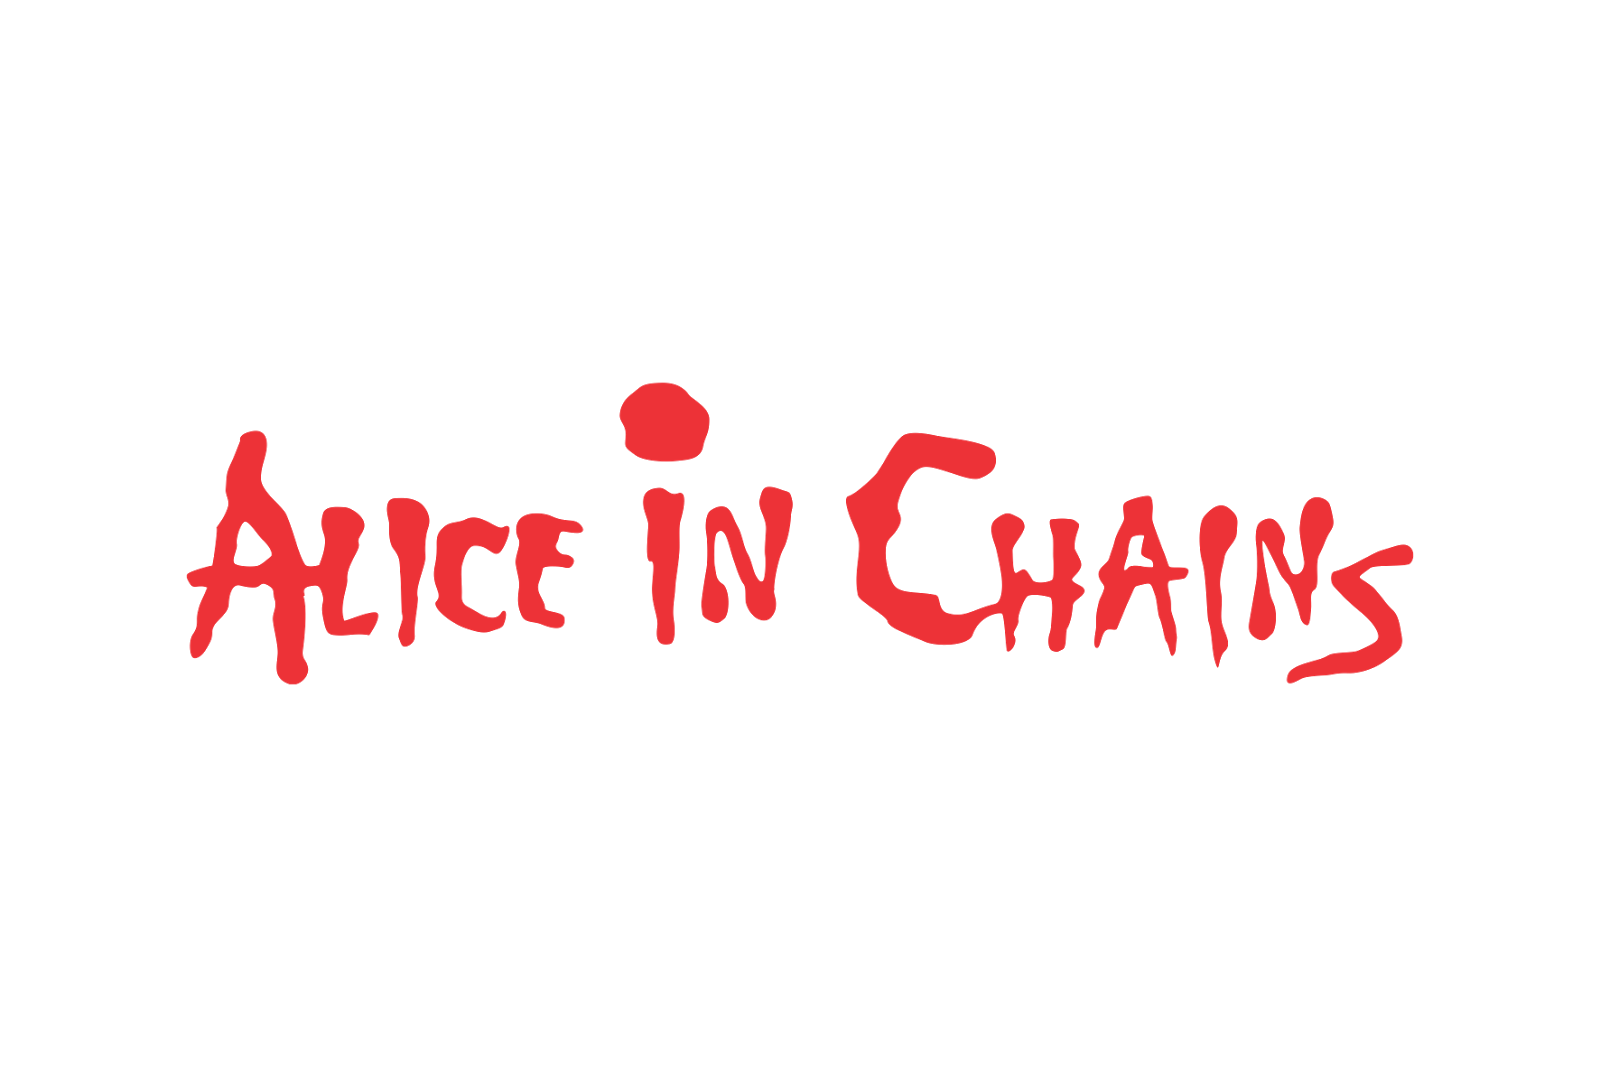 Logo Alice In Chains PNG - 105577